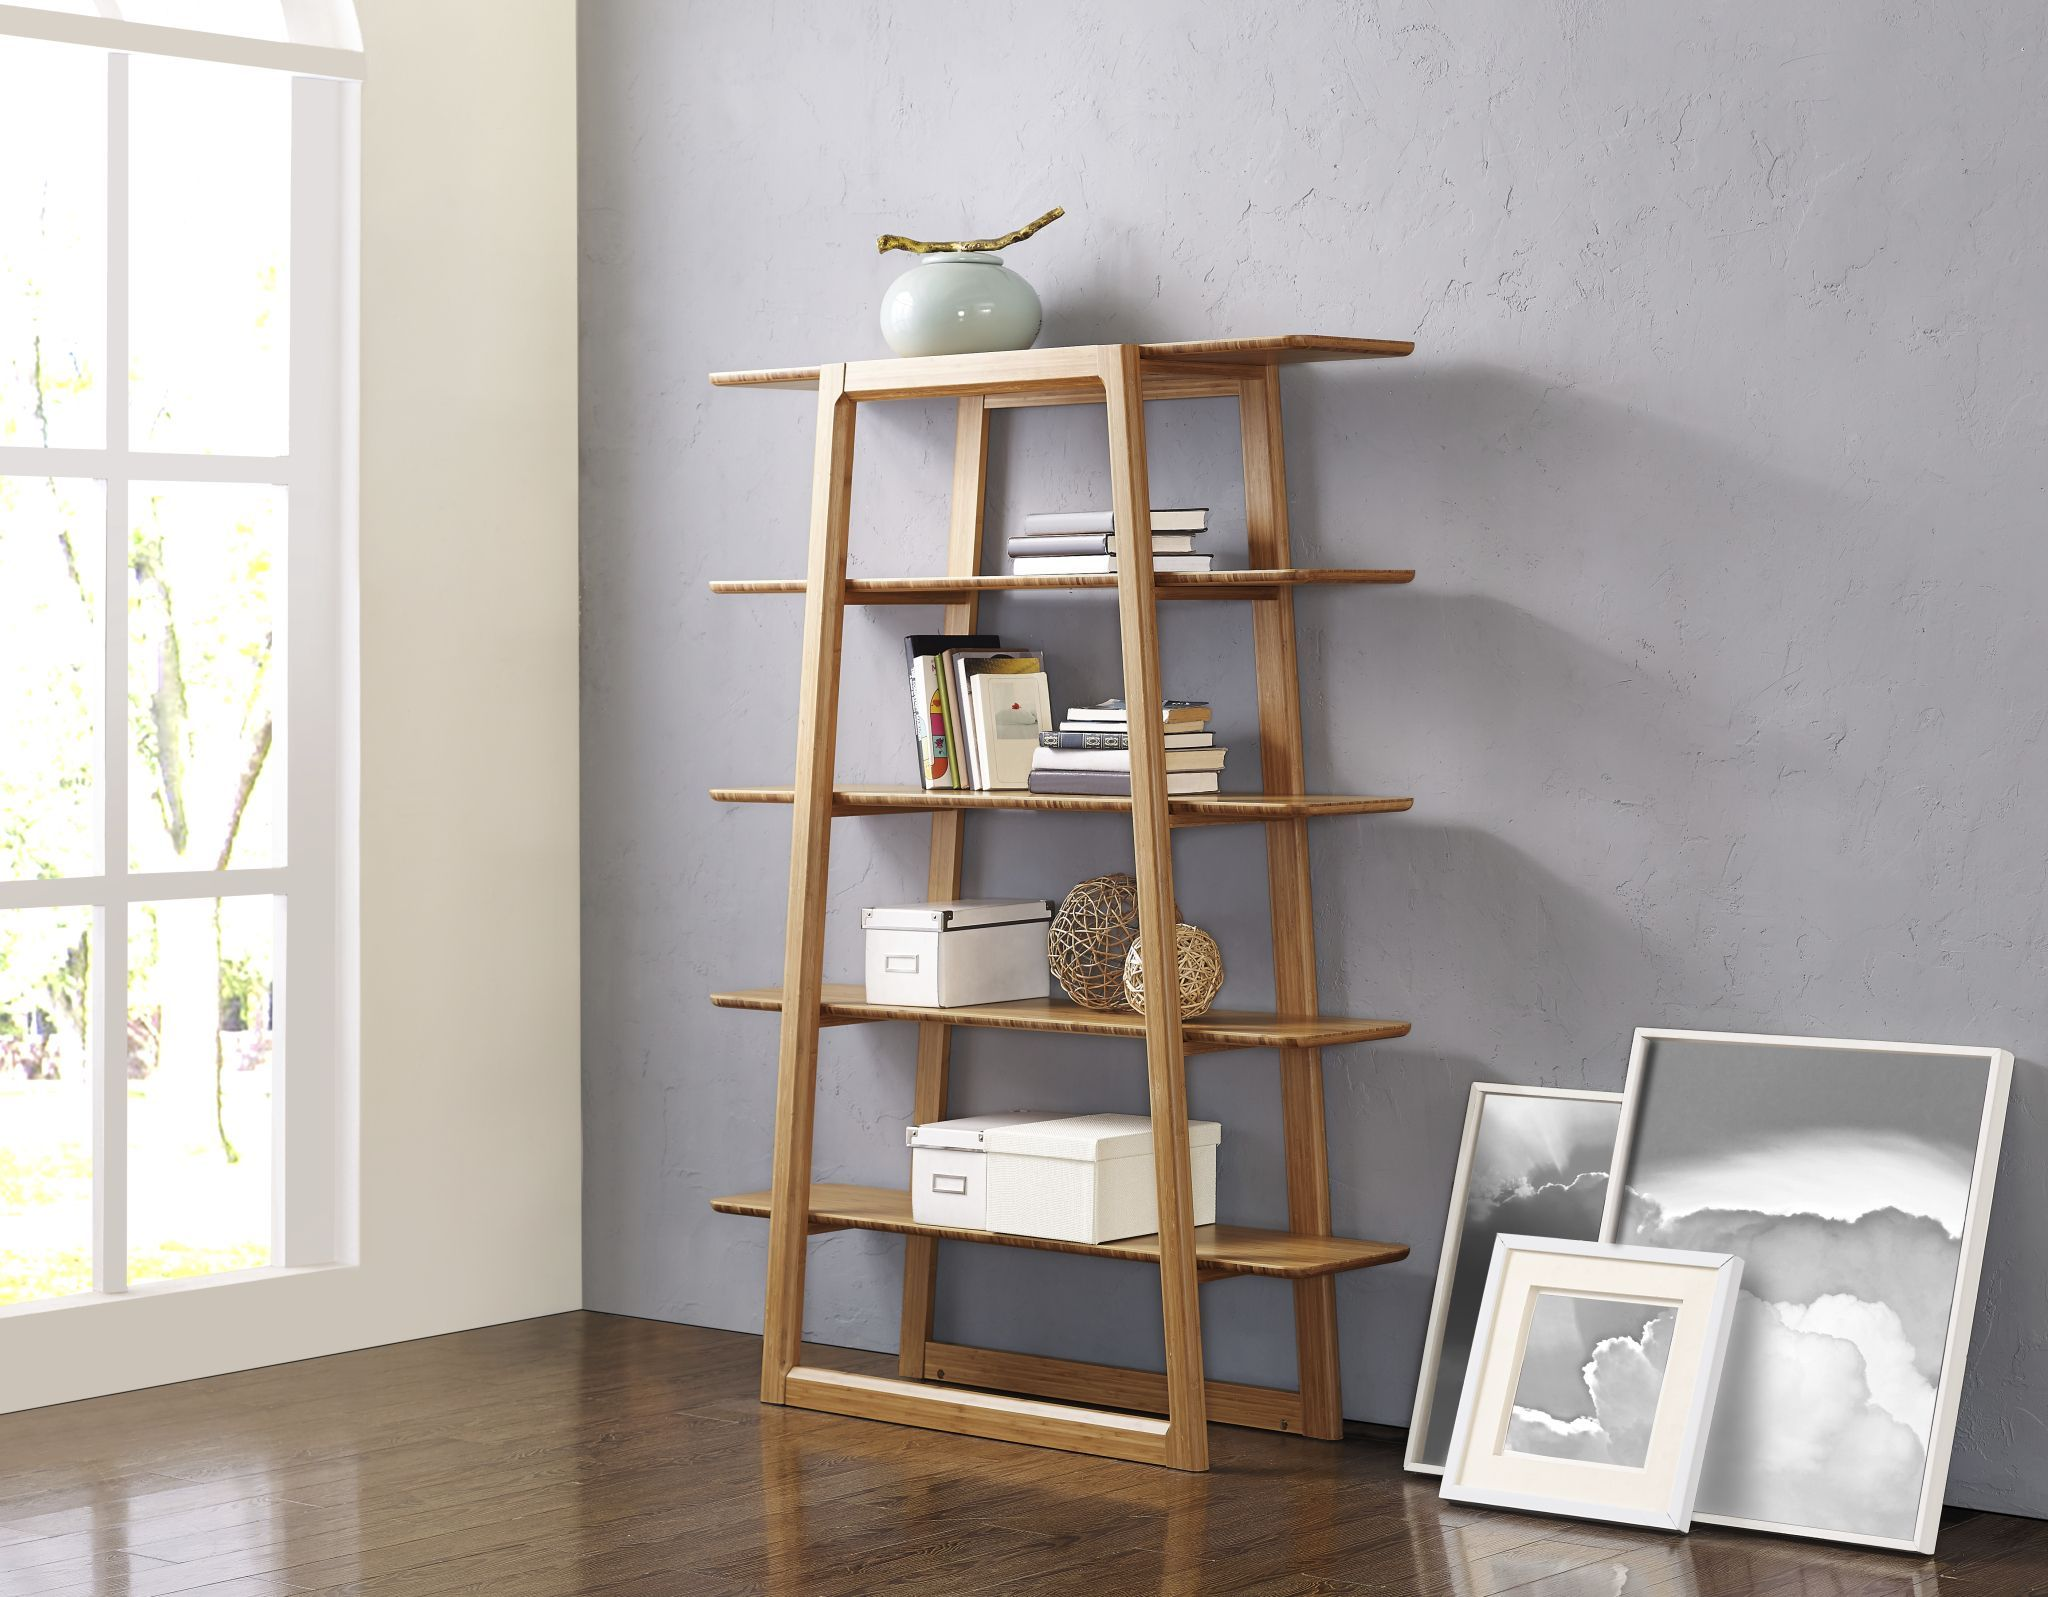 Versailles Book Shelf Crafted In Solid Bamboo, One Of Earths